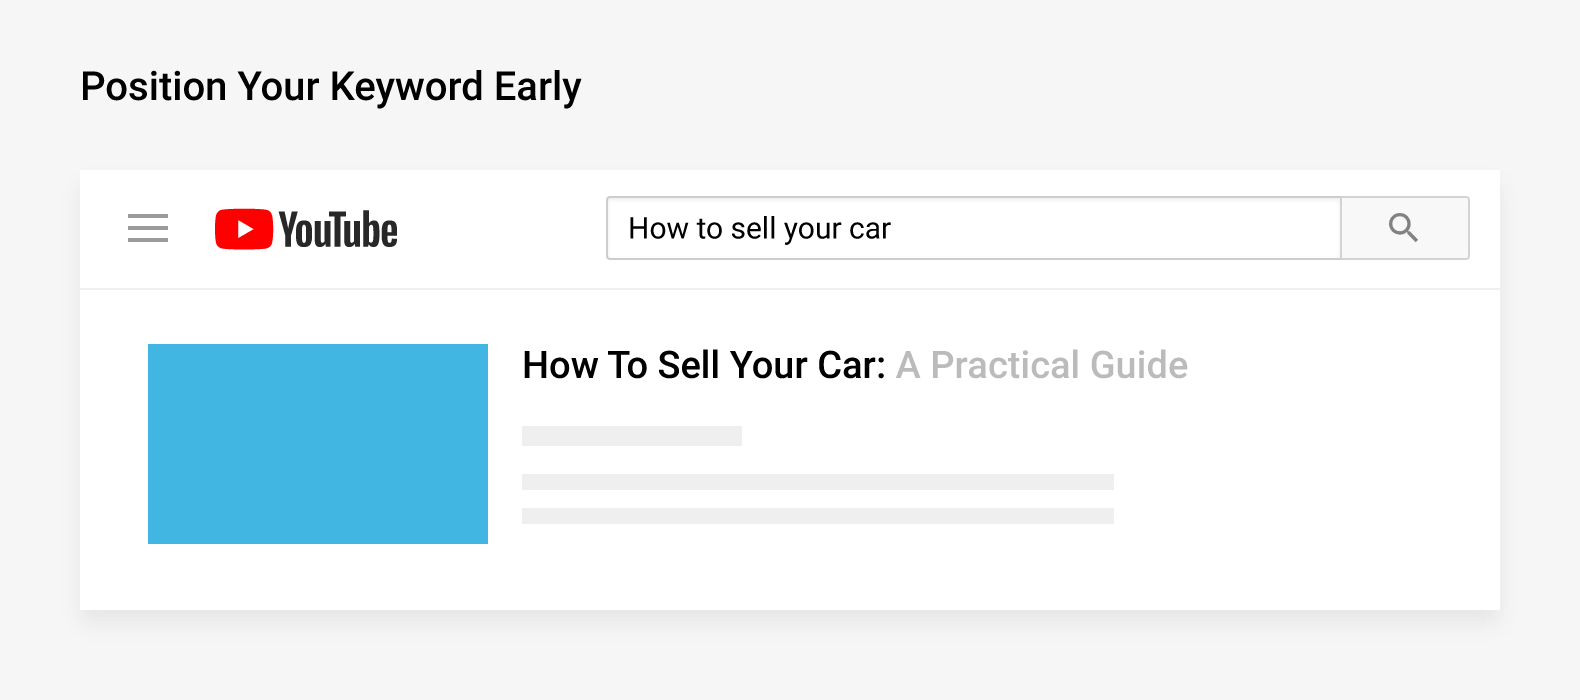 Position your keyword early